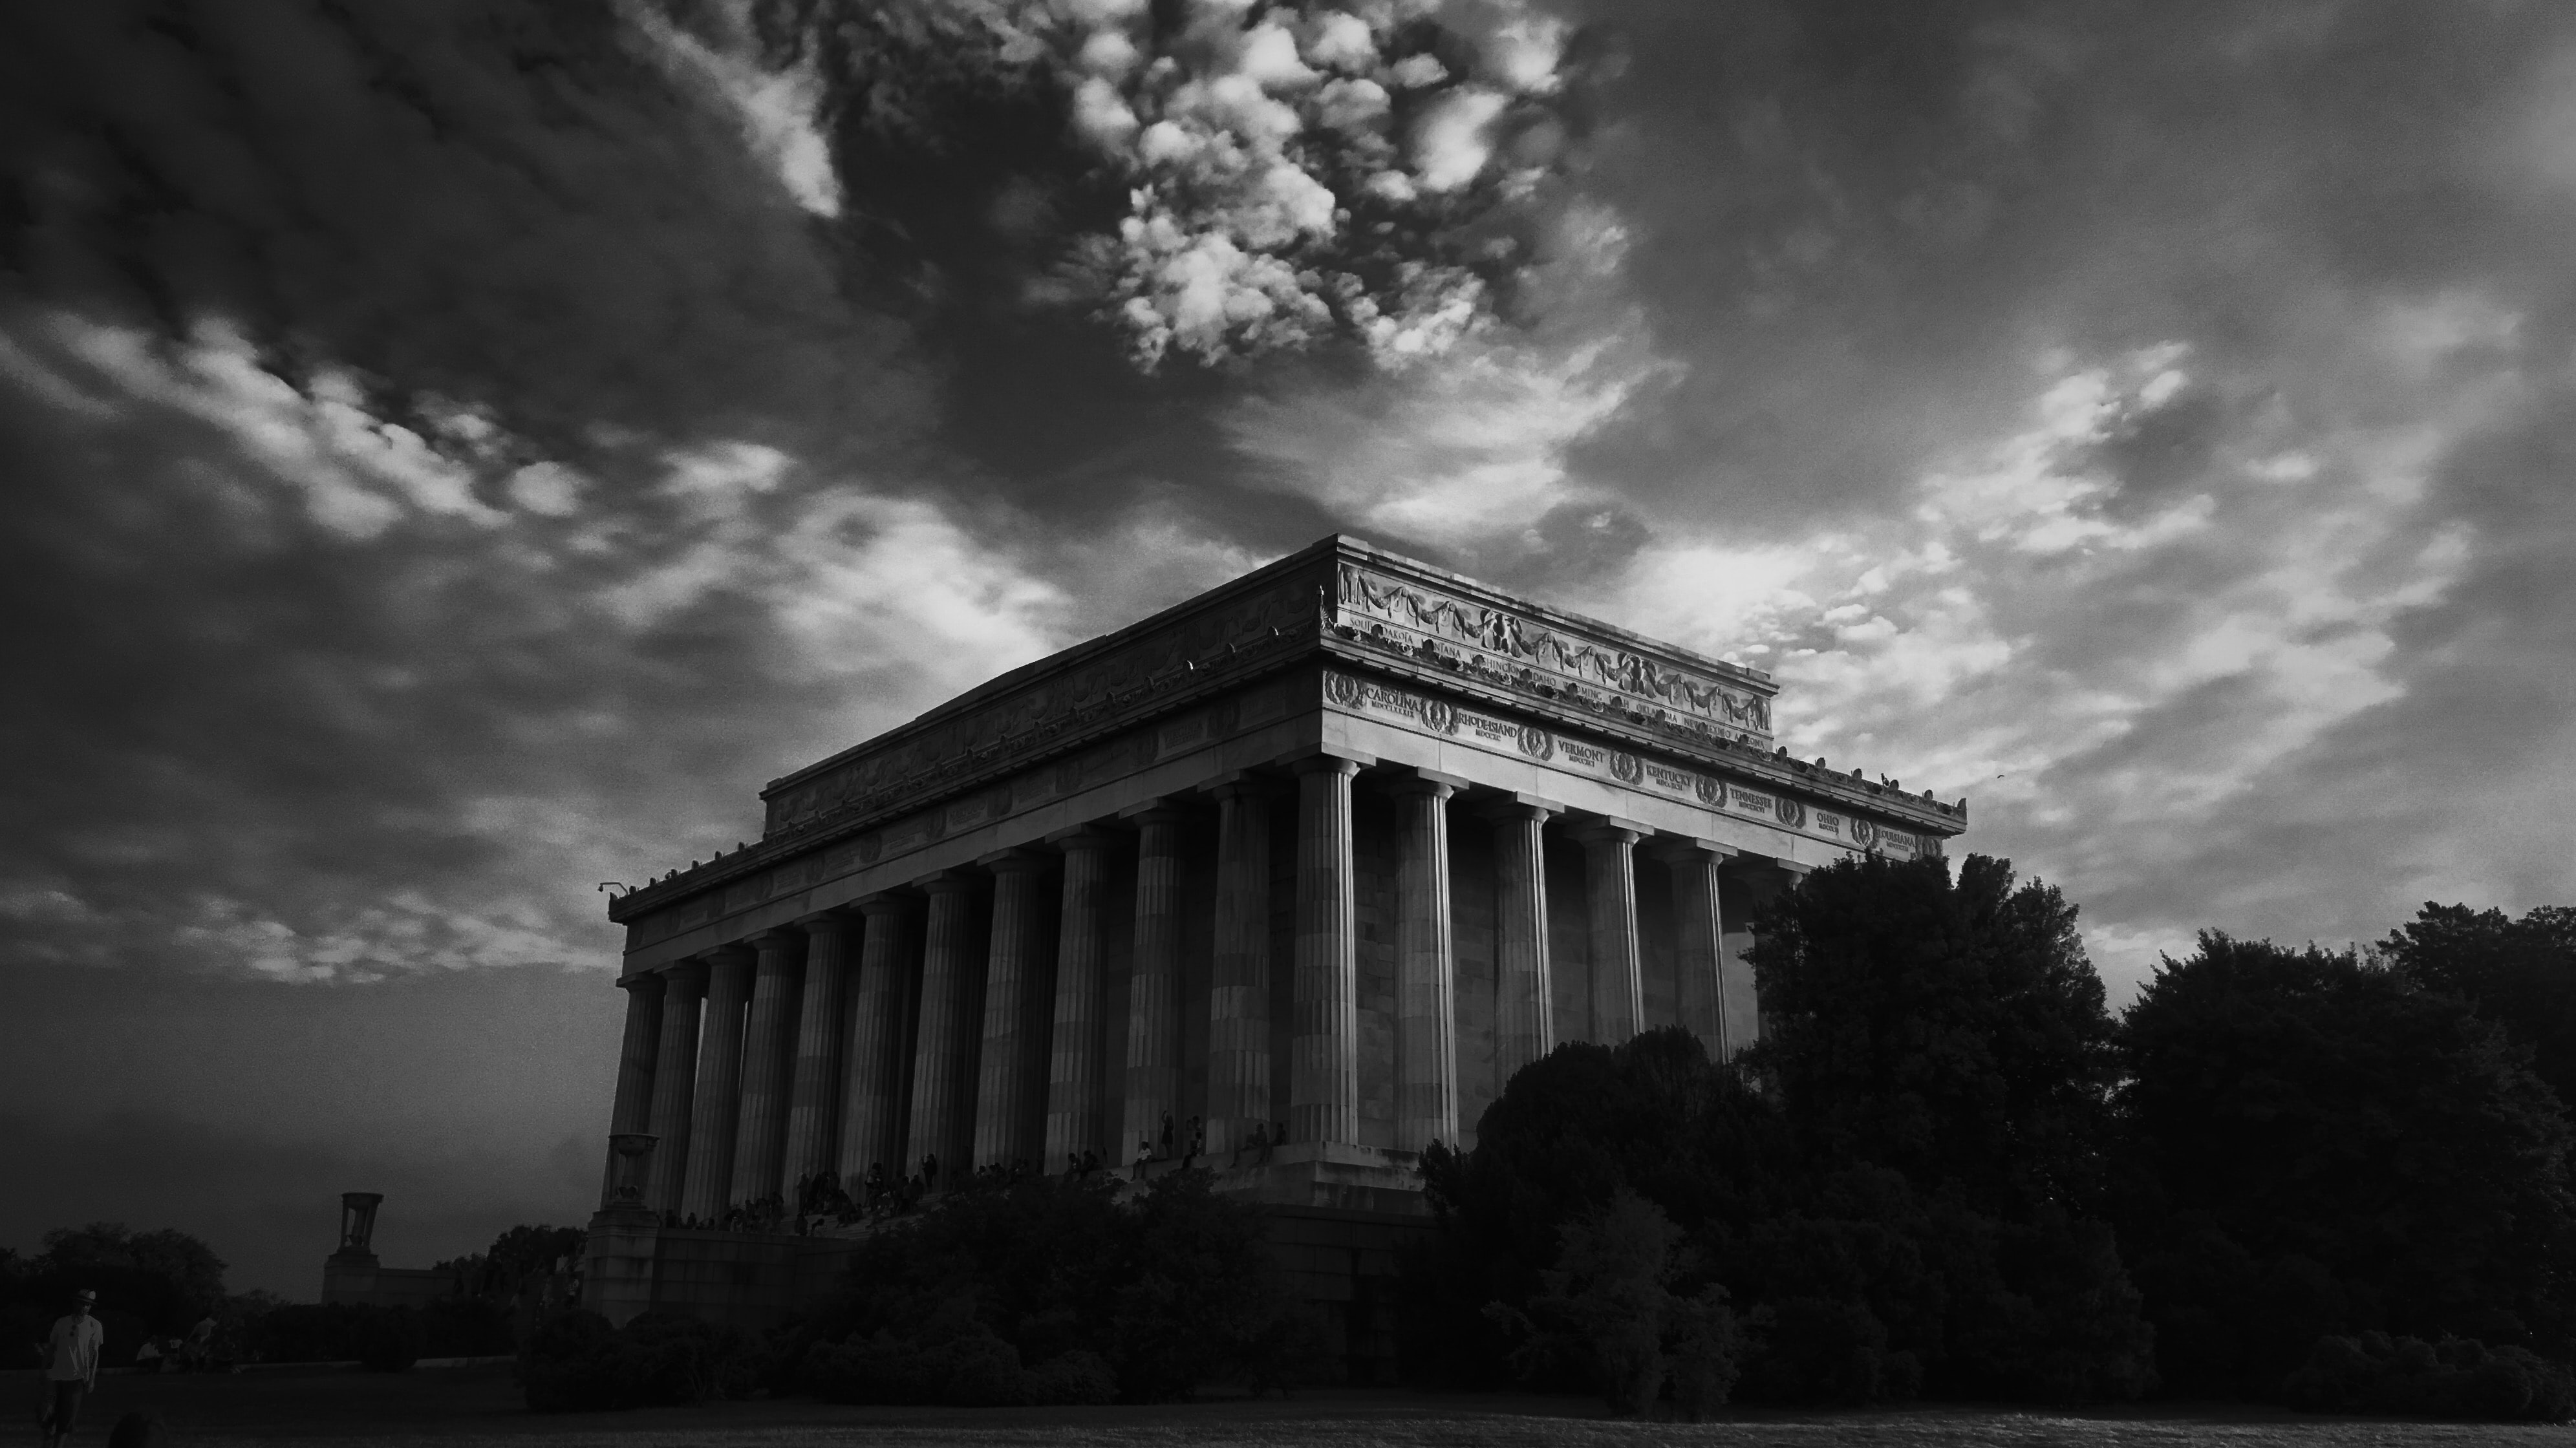 Black and white long shot of classic ancient building with pillars, cloudy sky and trees